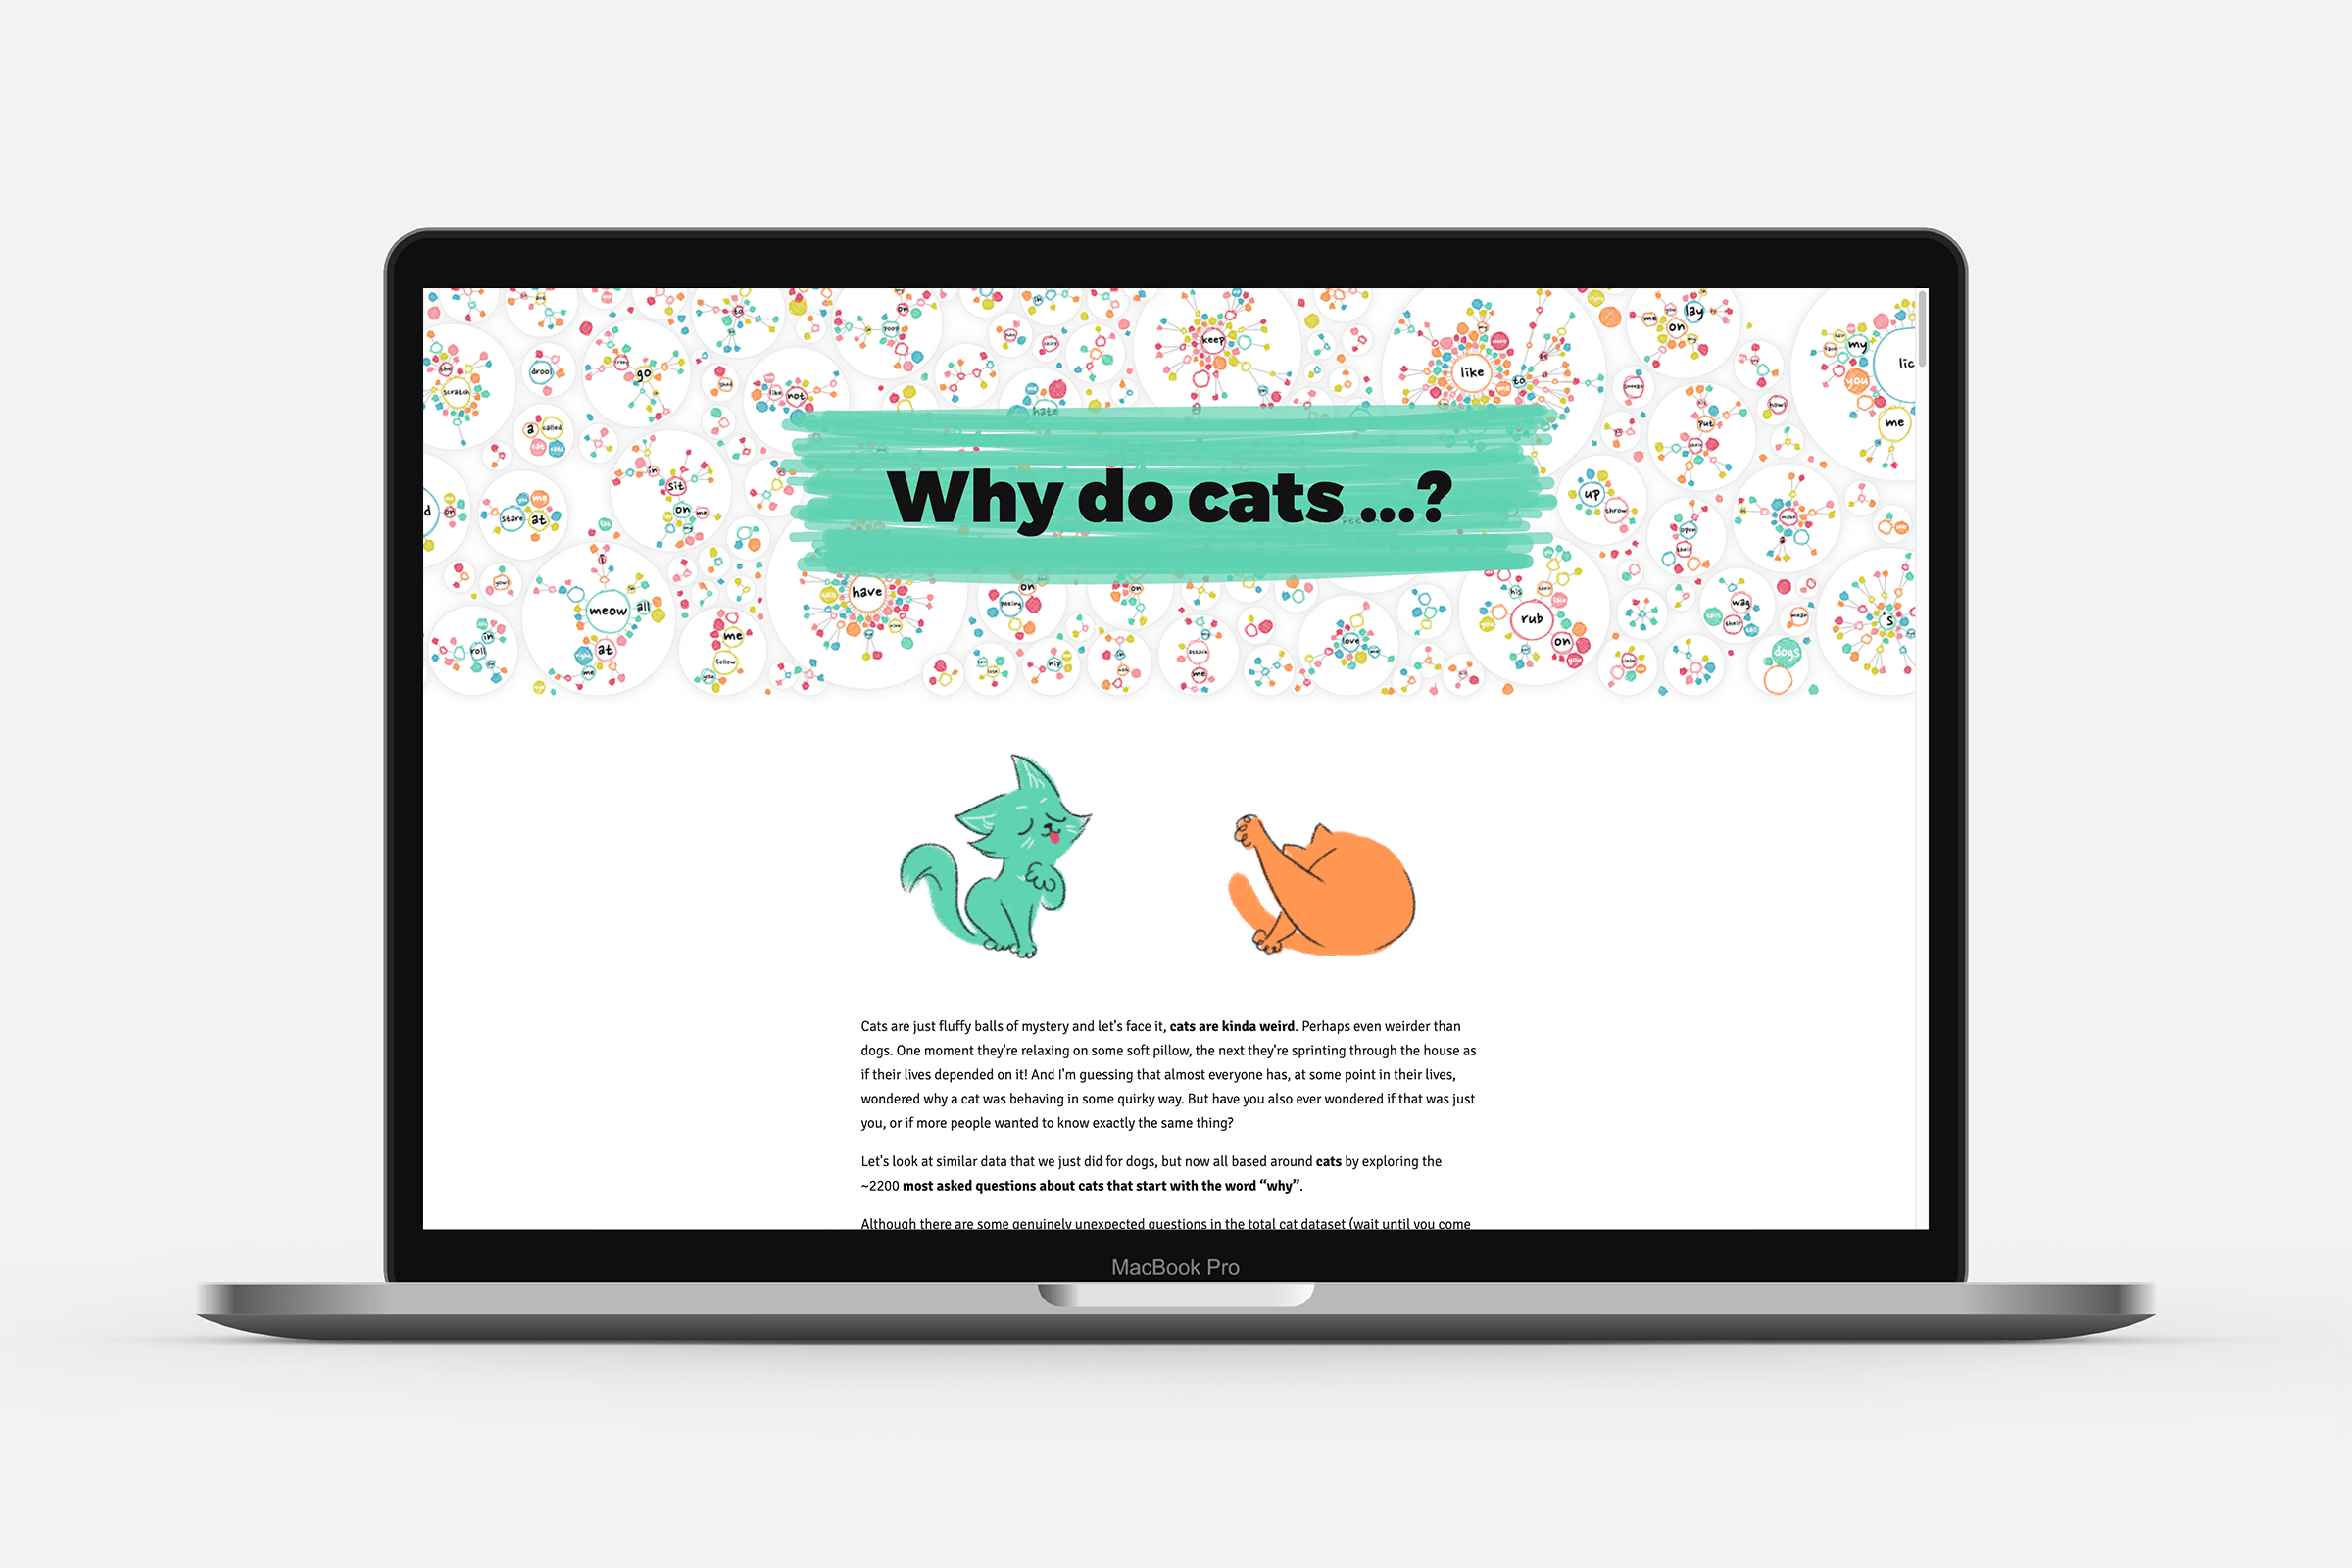 The start of the cat deep dive page